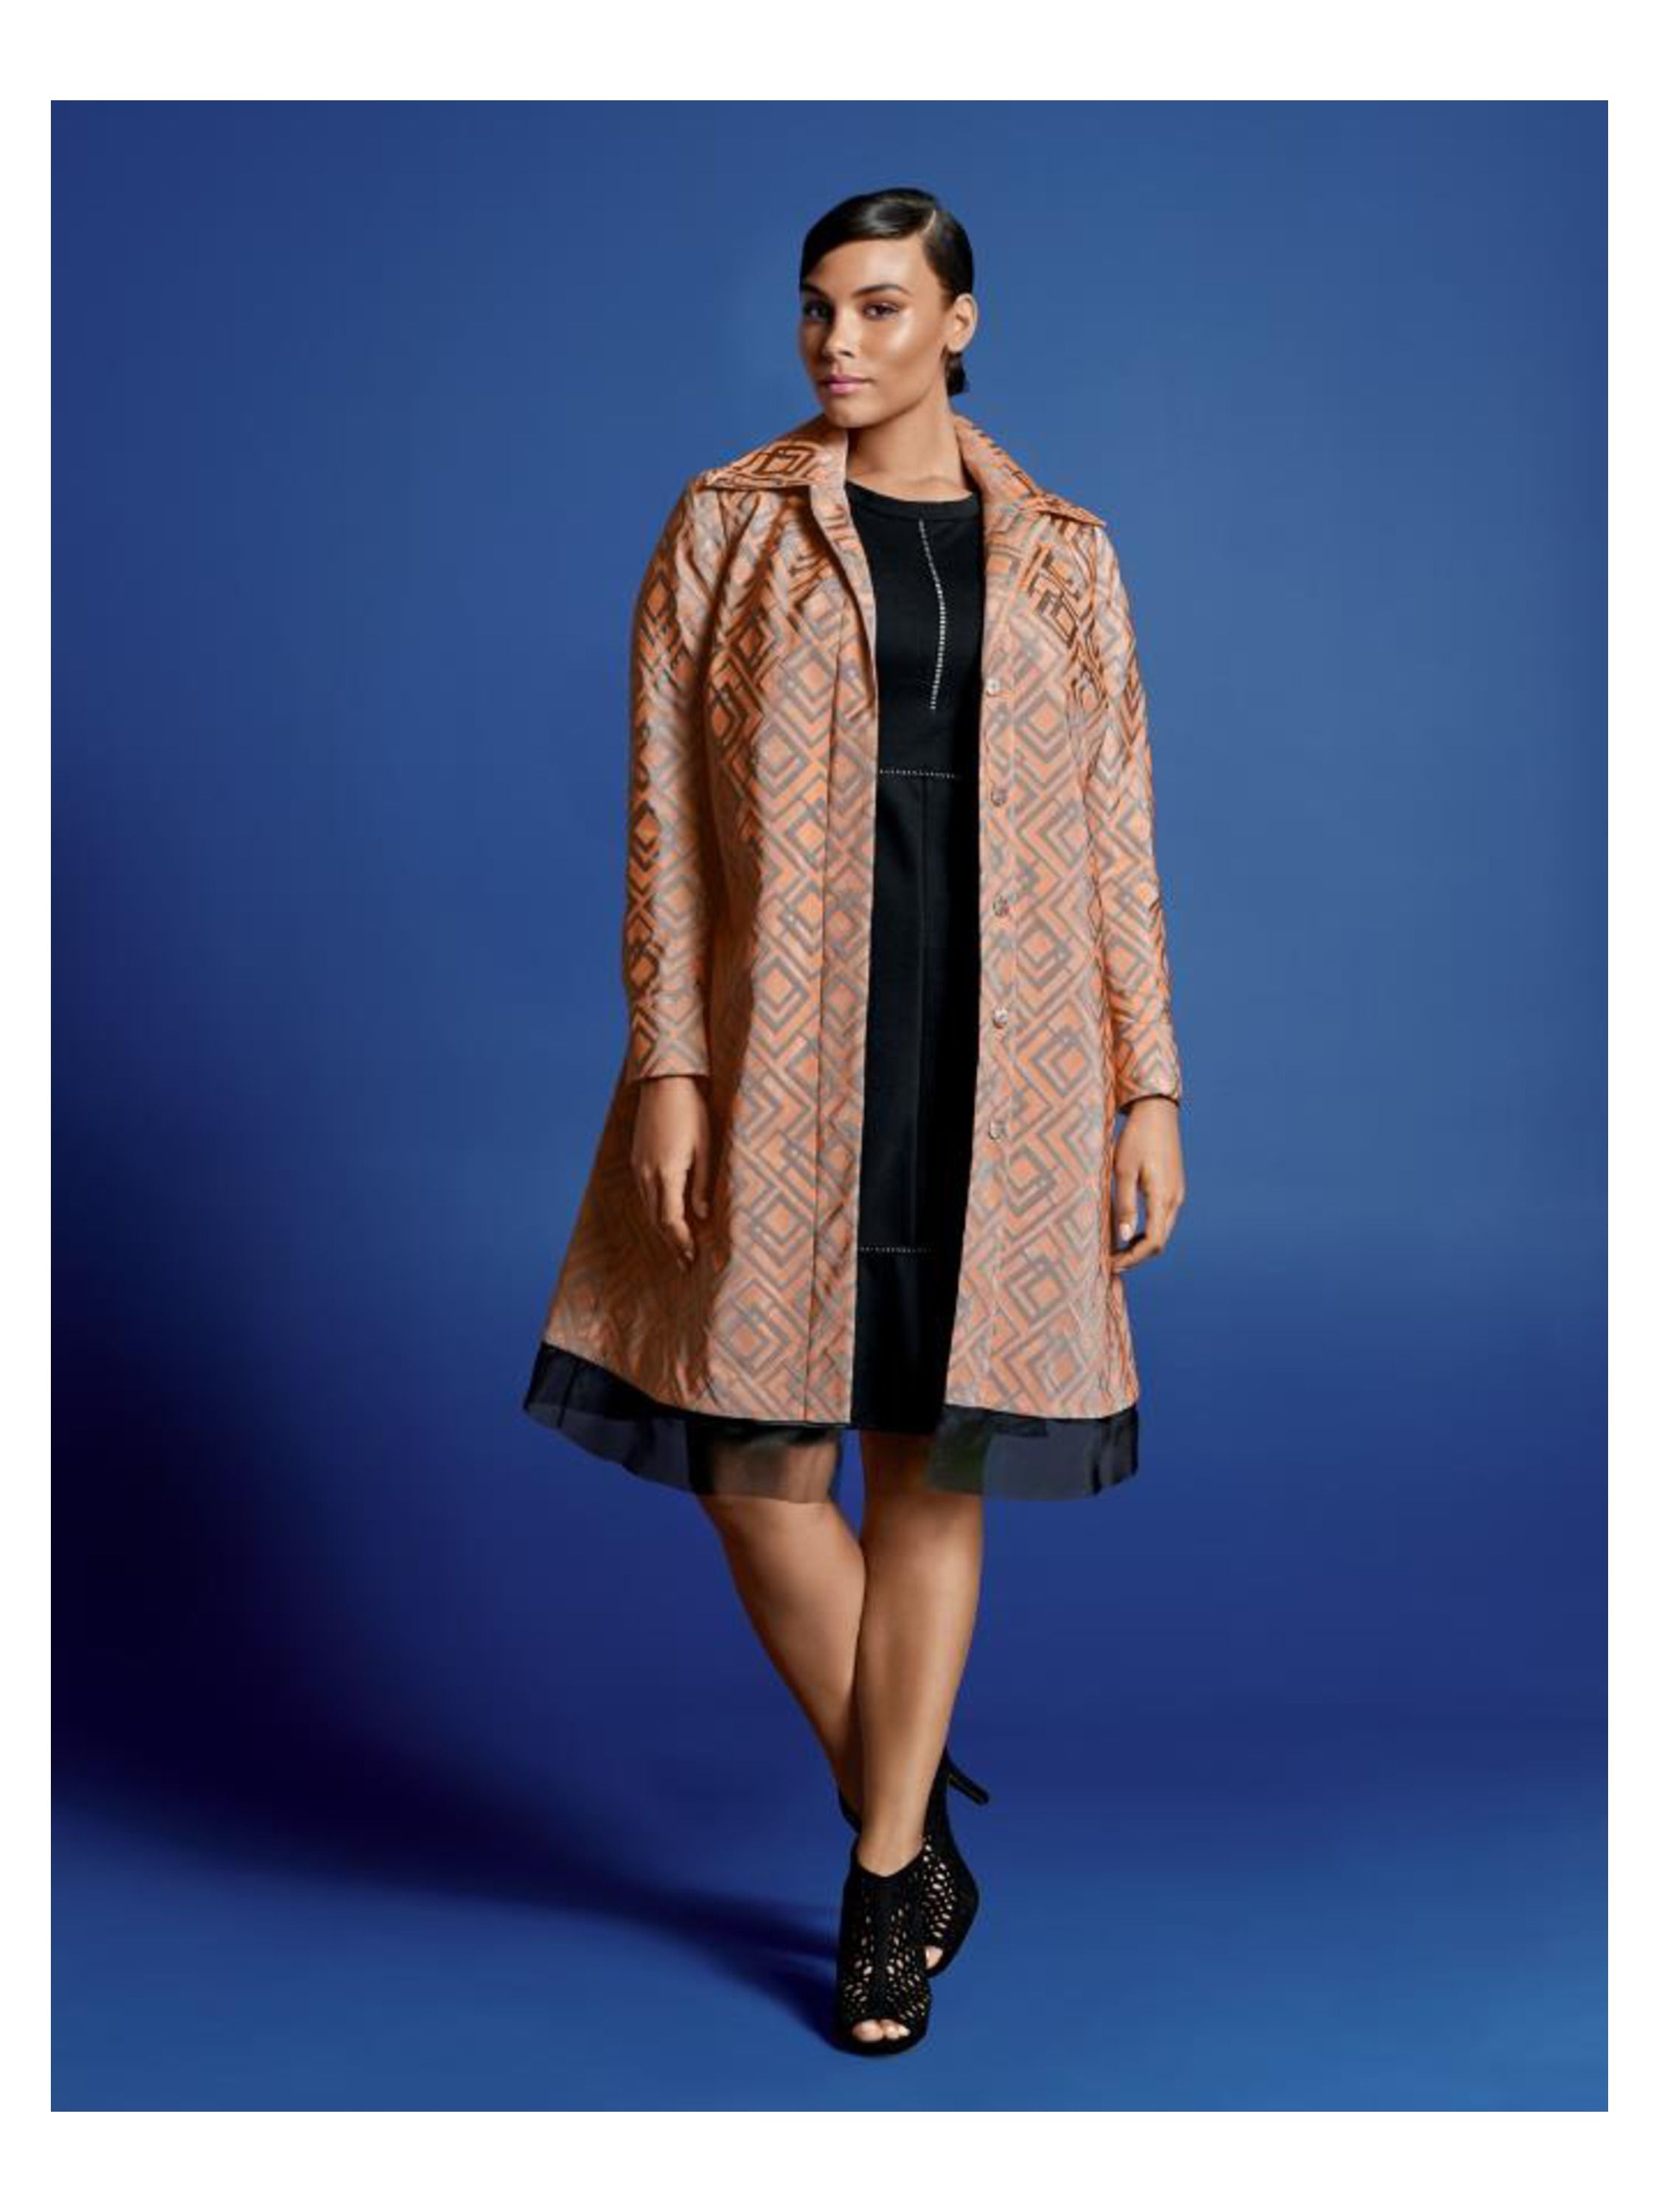 68203ac06ff Did you see the latest from the isabel toledo for lanebryant resort  collection very cutesy and